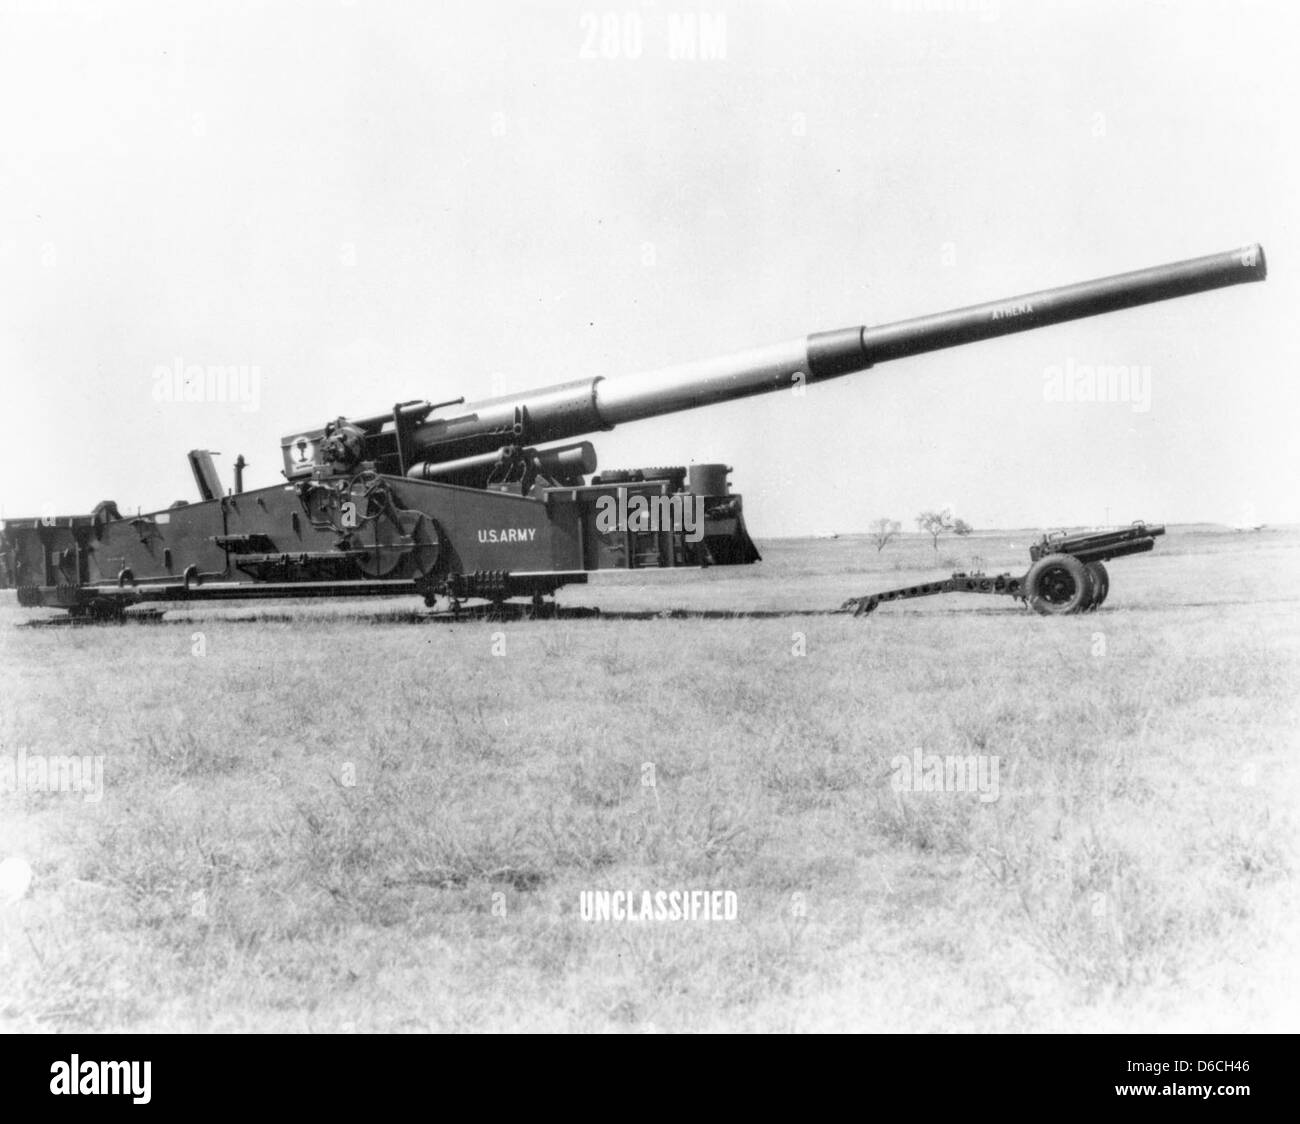 280 mm AFAP cannon on display Photo courtesy of DTRIAC Arm Stock Photo